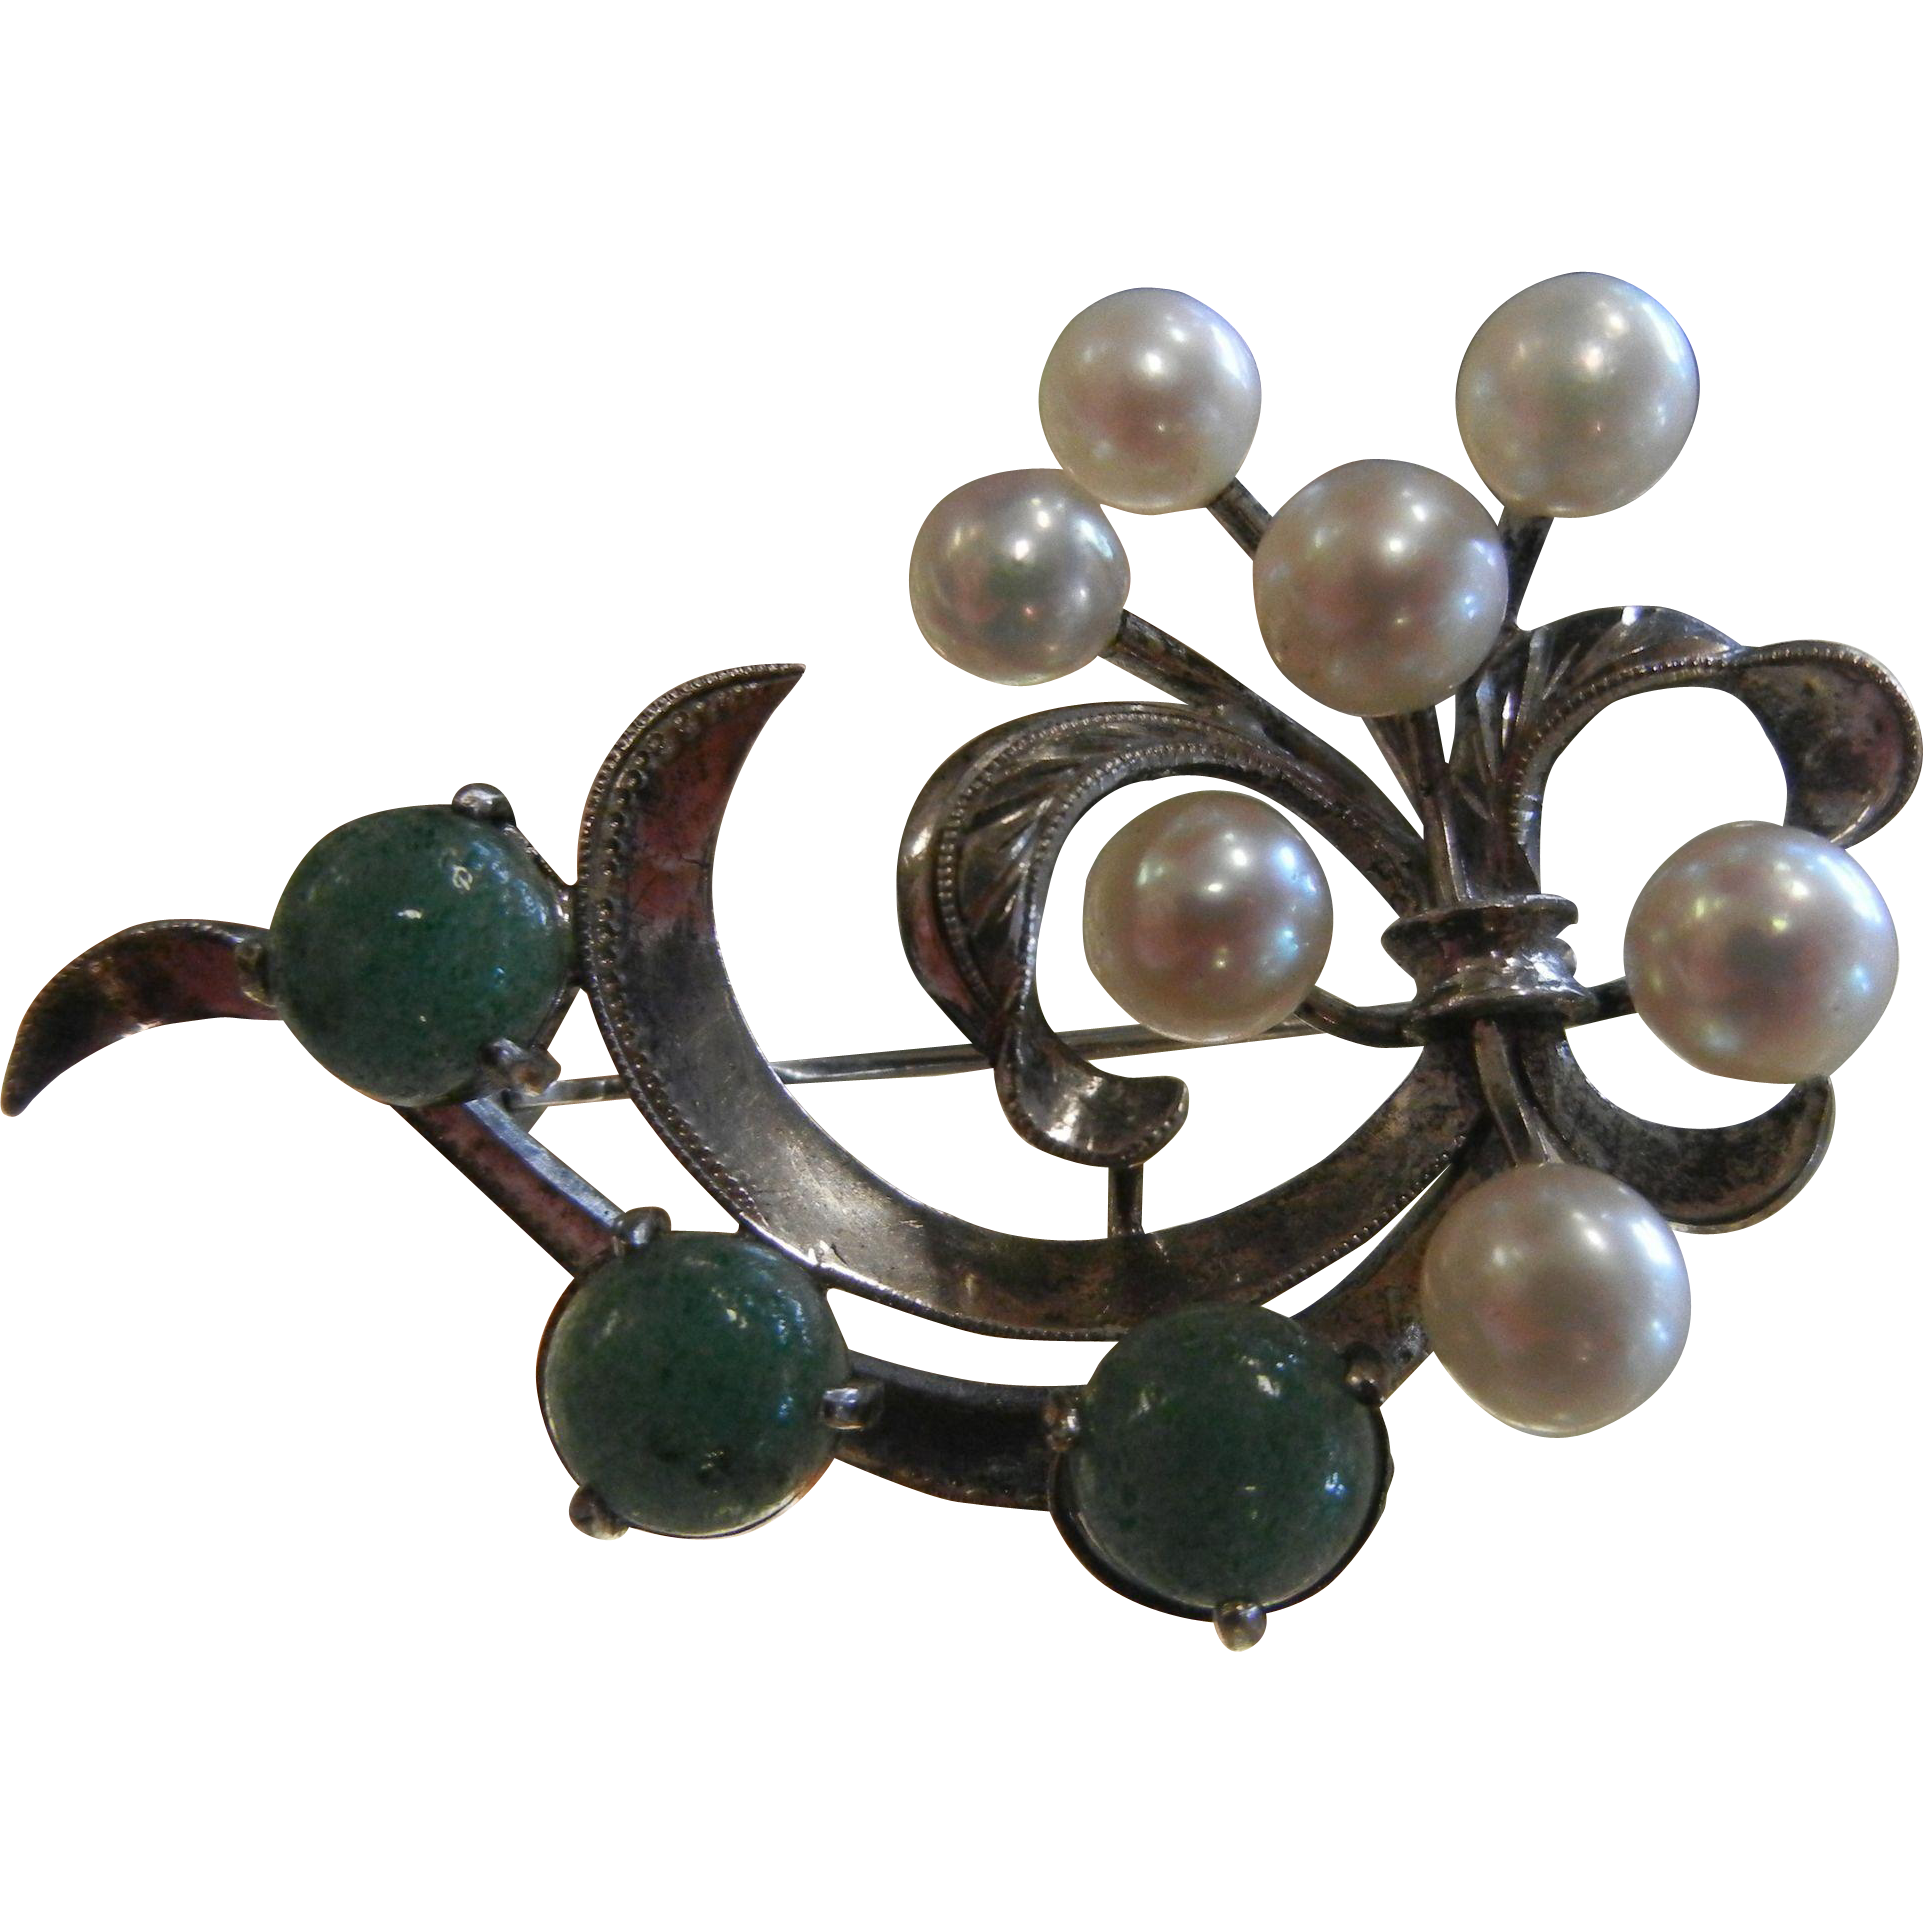 Vintage Caribe Sterling Silver Brooch w/ Cultured Pearls & Green Aventurine